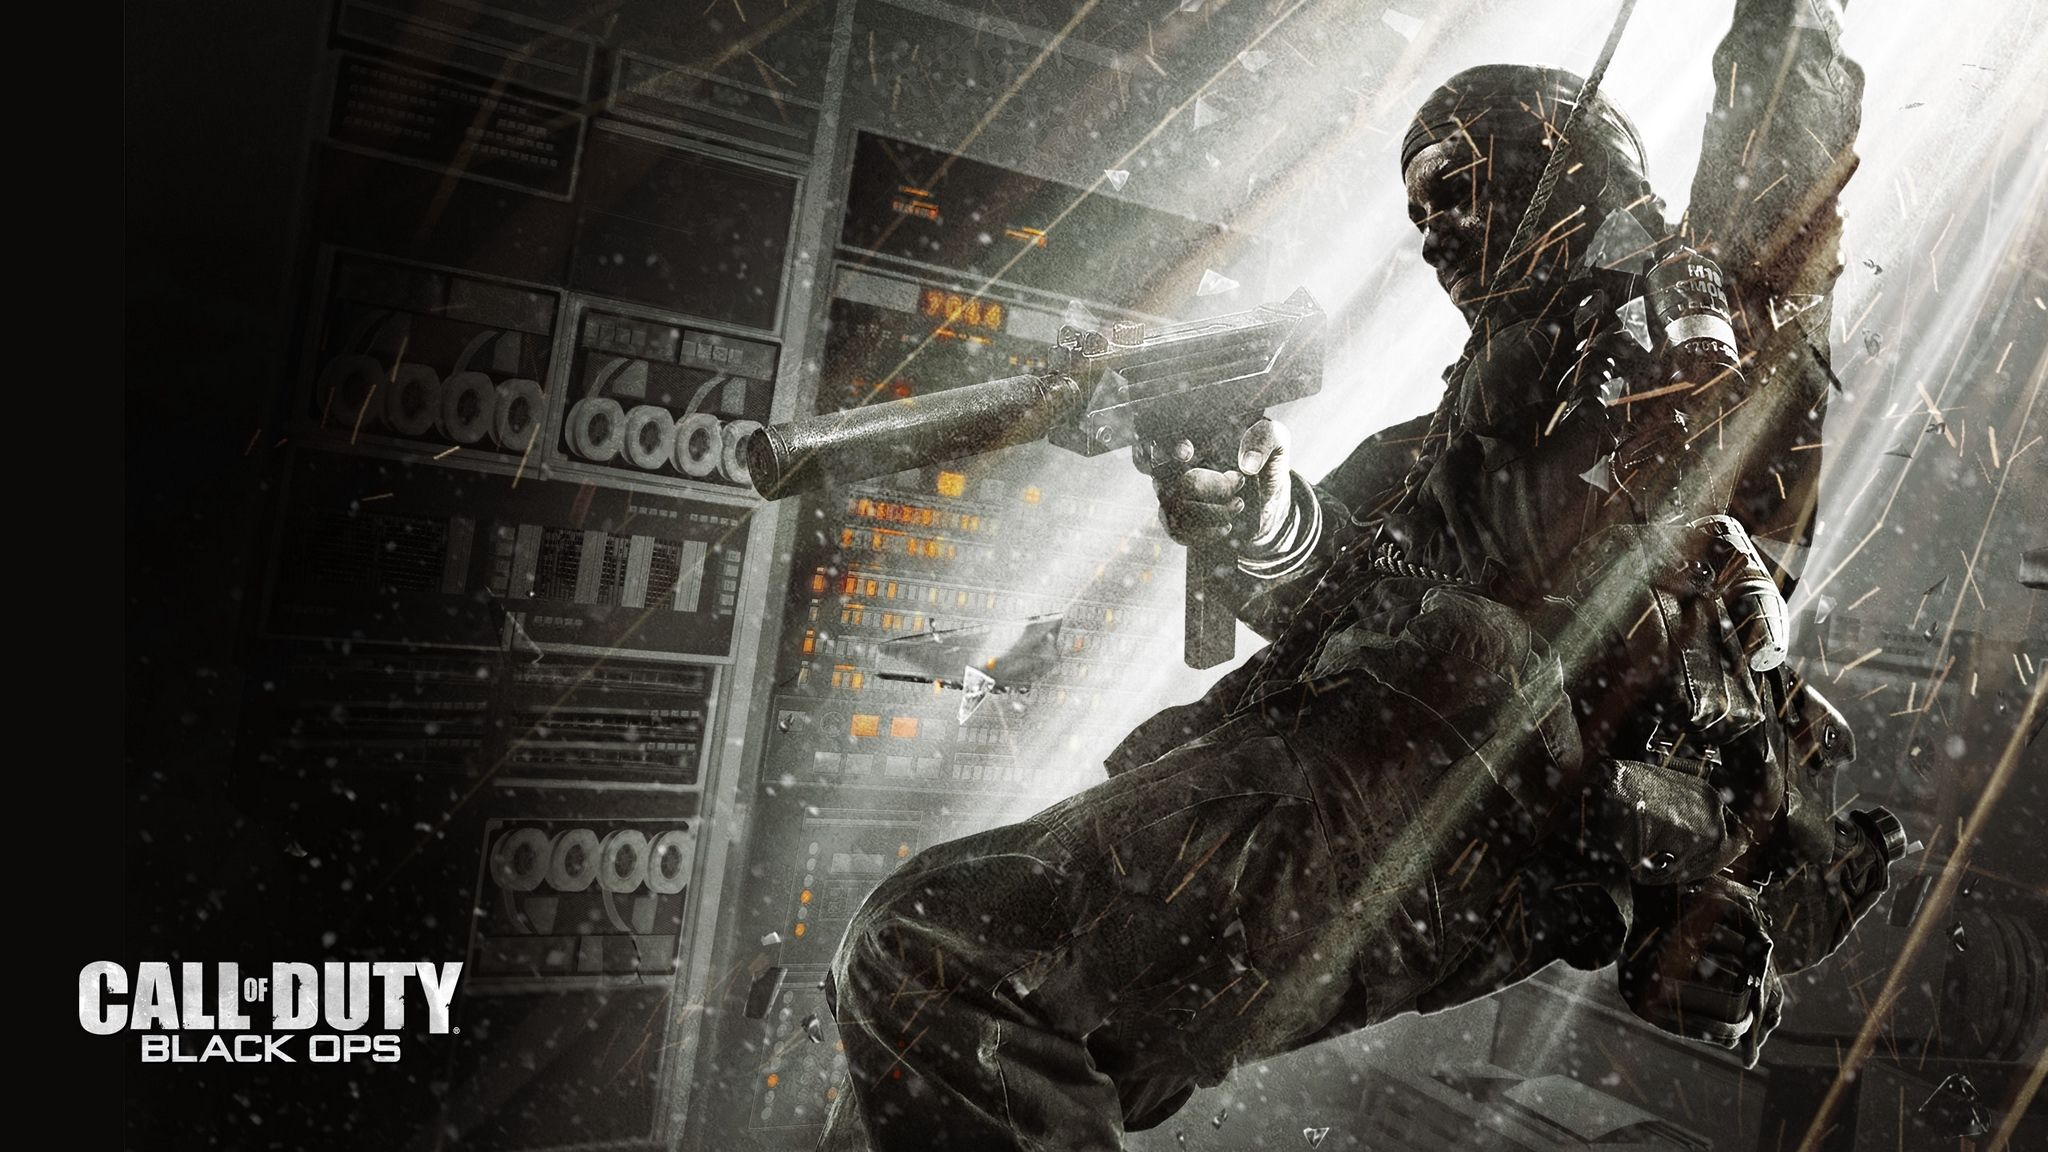 Call Of Duty 48x1152 Wallpapers Top Free Call Of Duty 48x1152 Backgrounds Wallpaperaccess